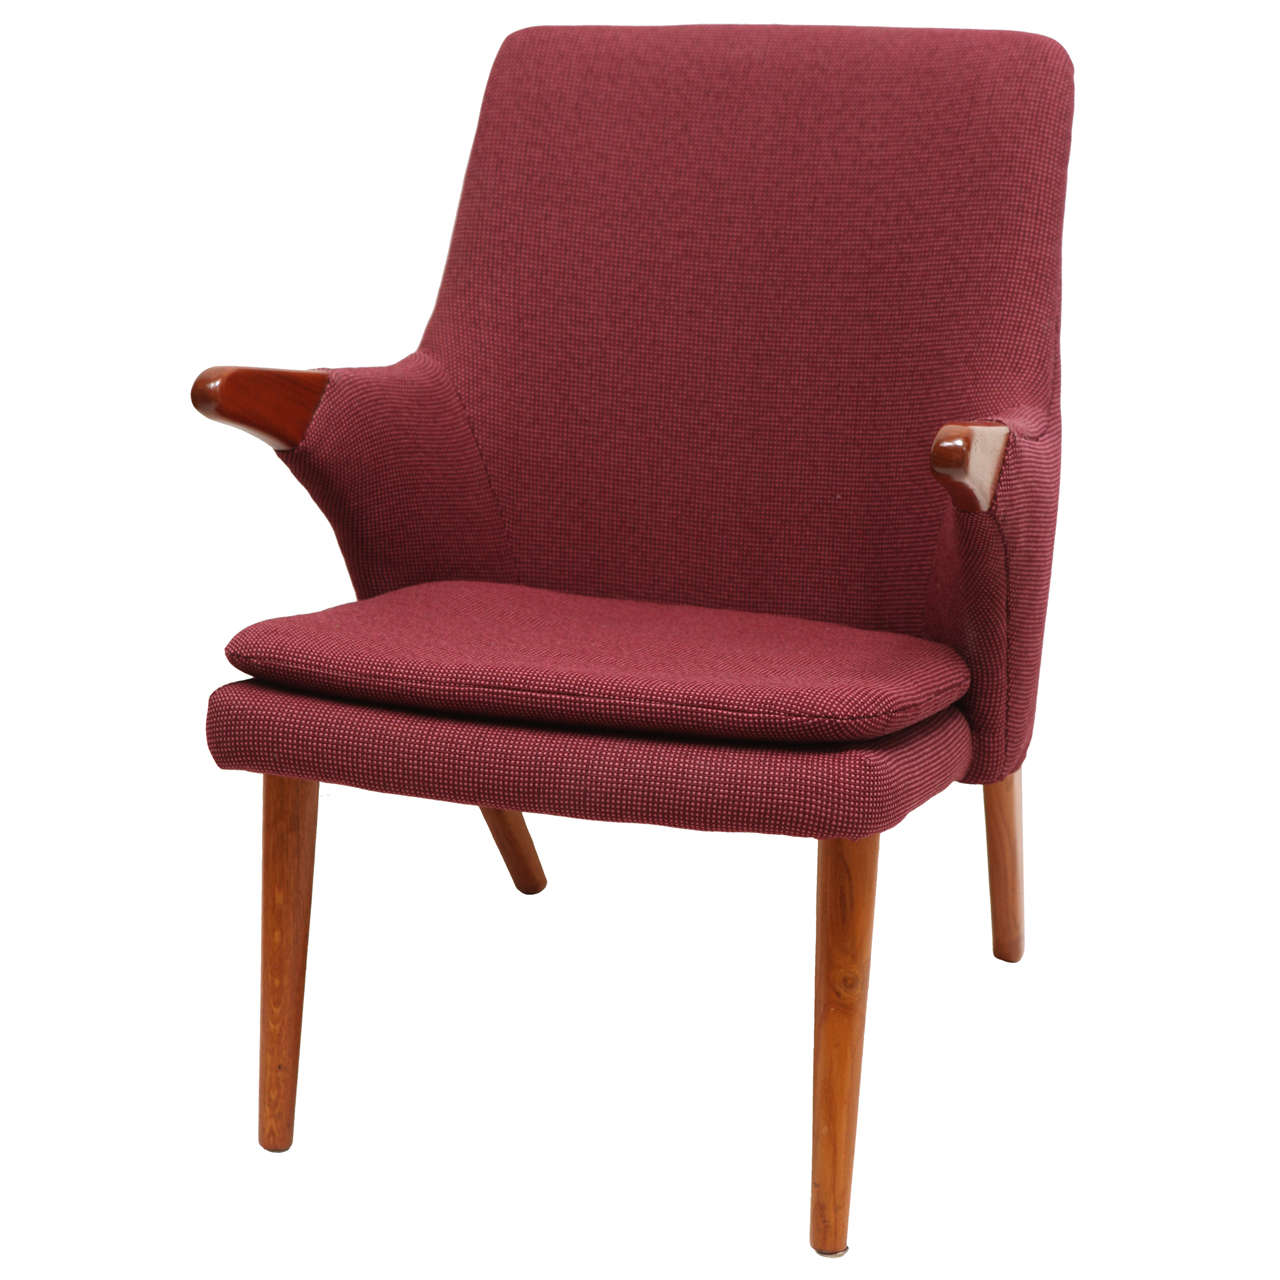 american leather swing chair pottery barn and a half cover danish modern at 1stdibs